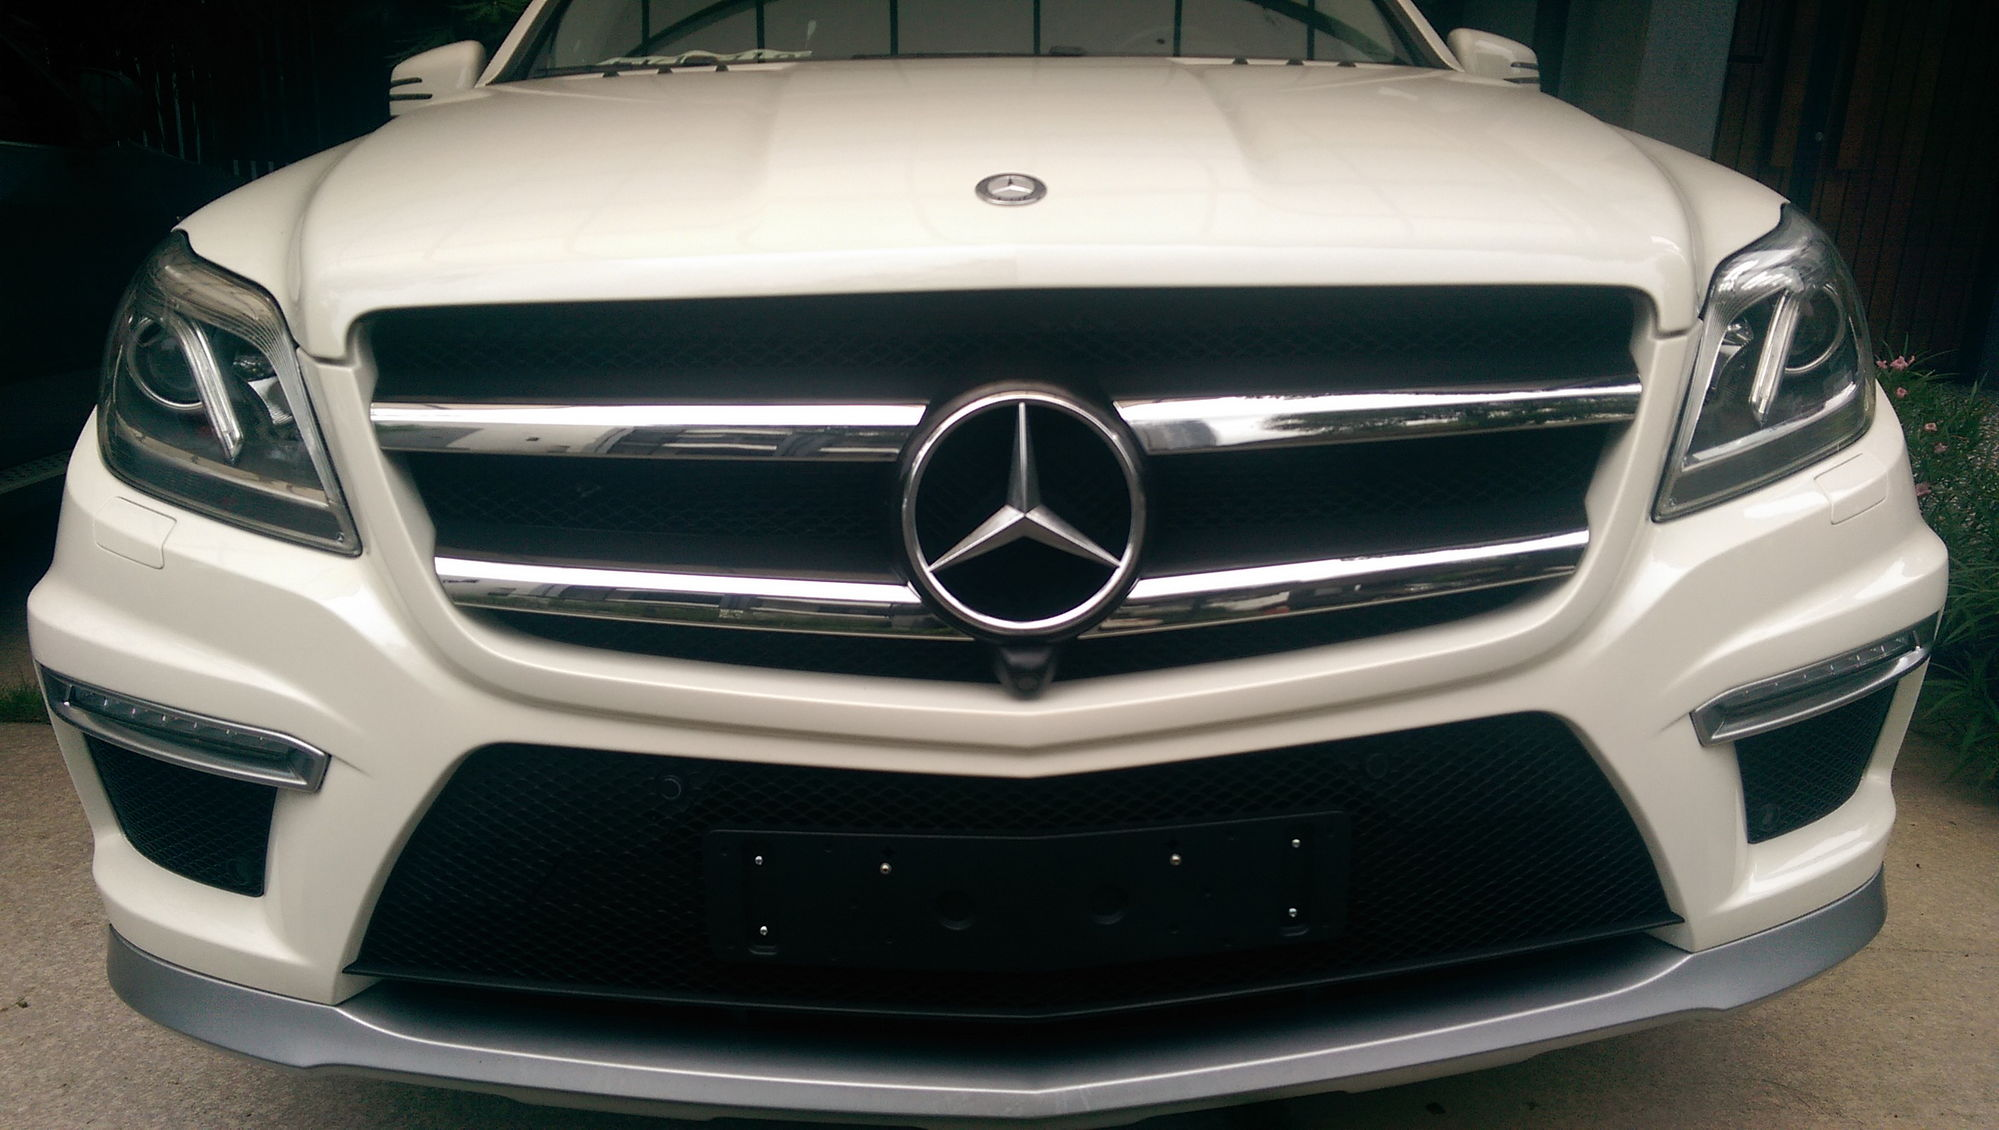 I ve installed amg body kit to my gl450 order them from alibaba com they were perfect fit according to the body shop who did the installation